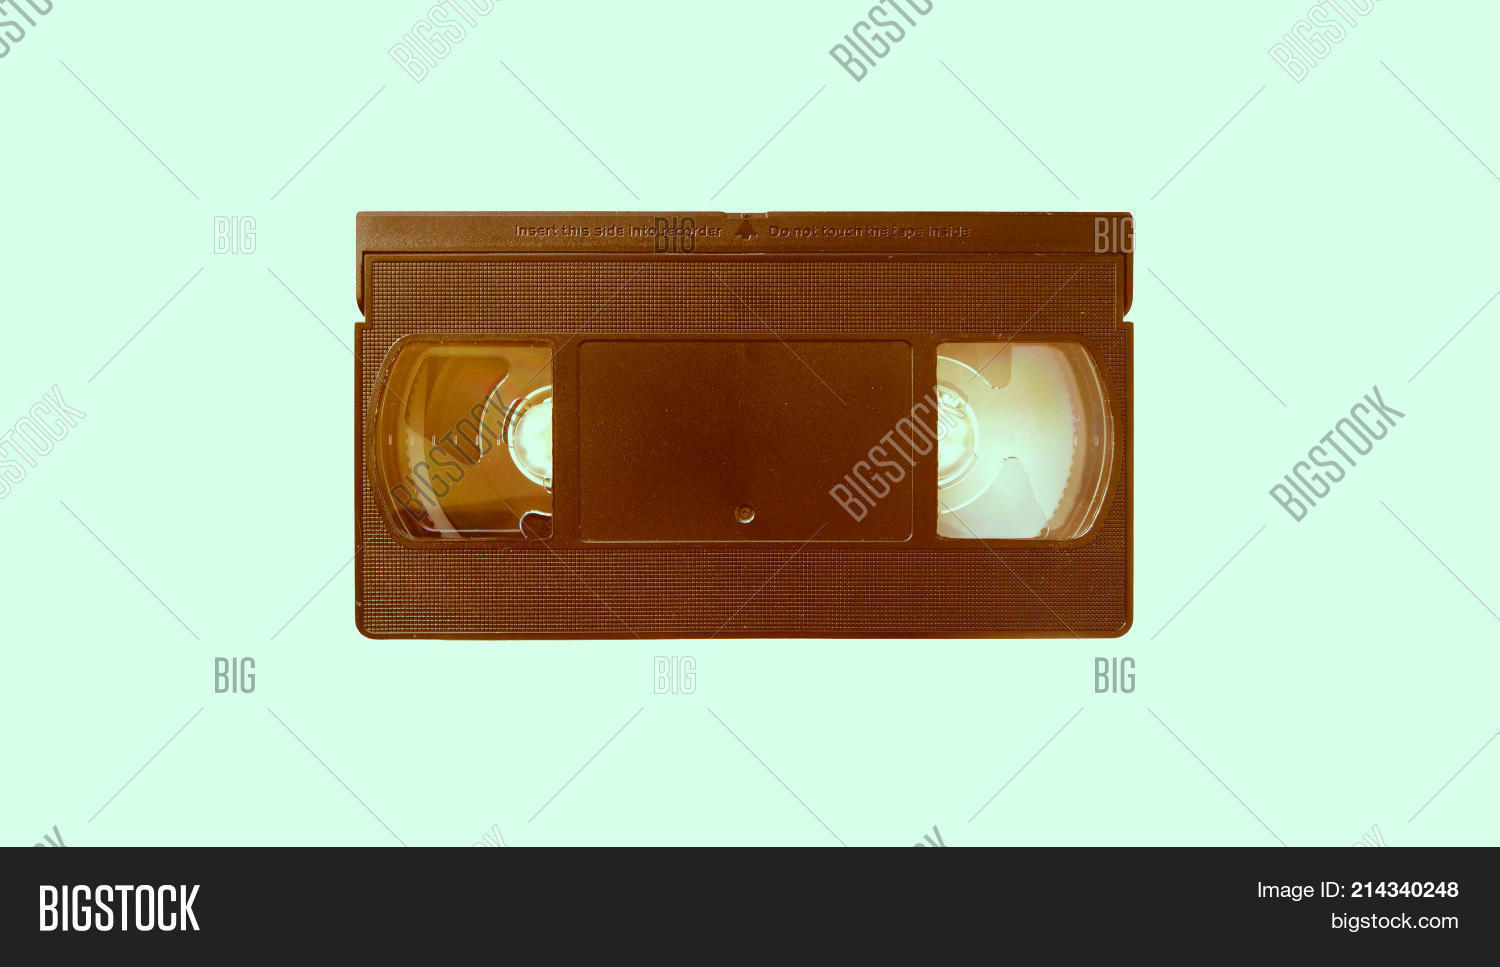 Old Video Cassette Image & Photo (Free Trial)   Bigstock